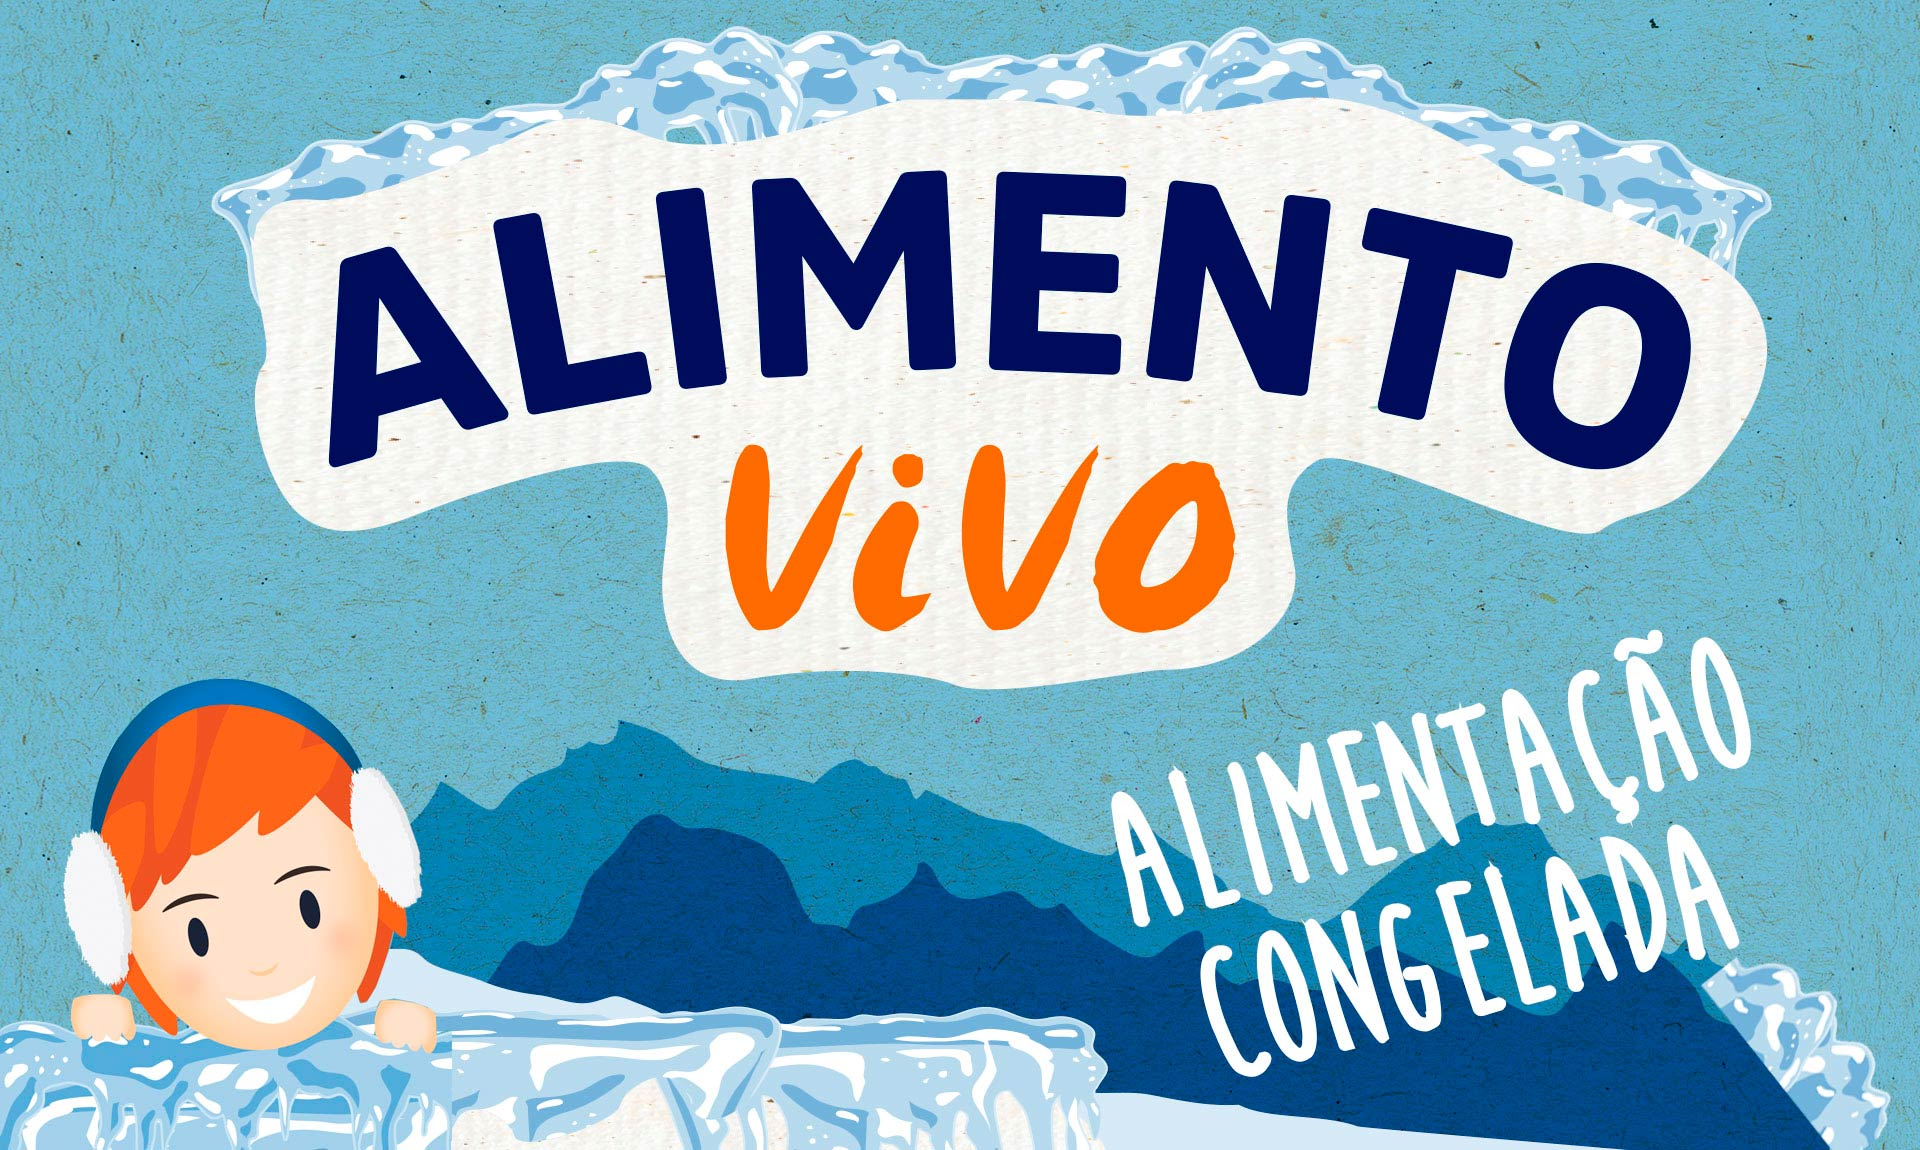 Alimento Vivo: alimentação congelada